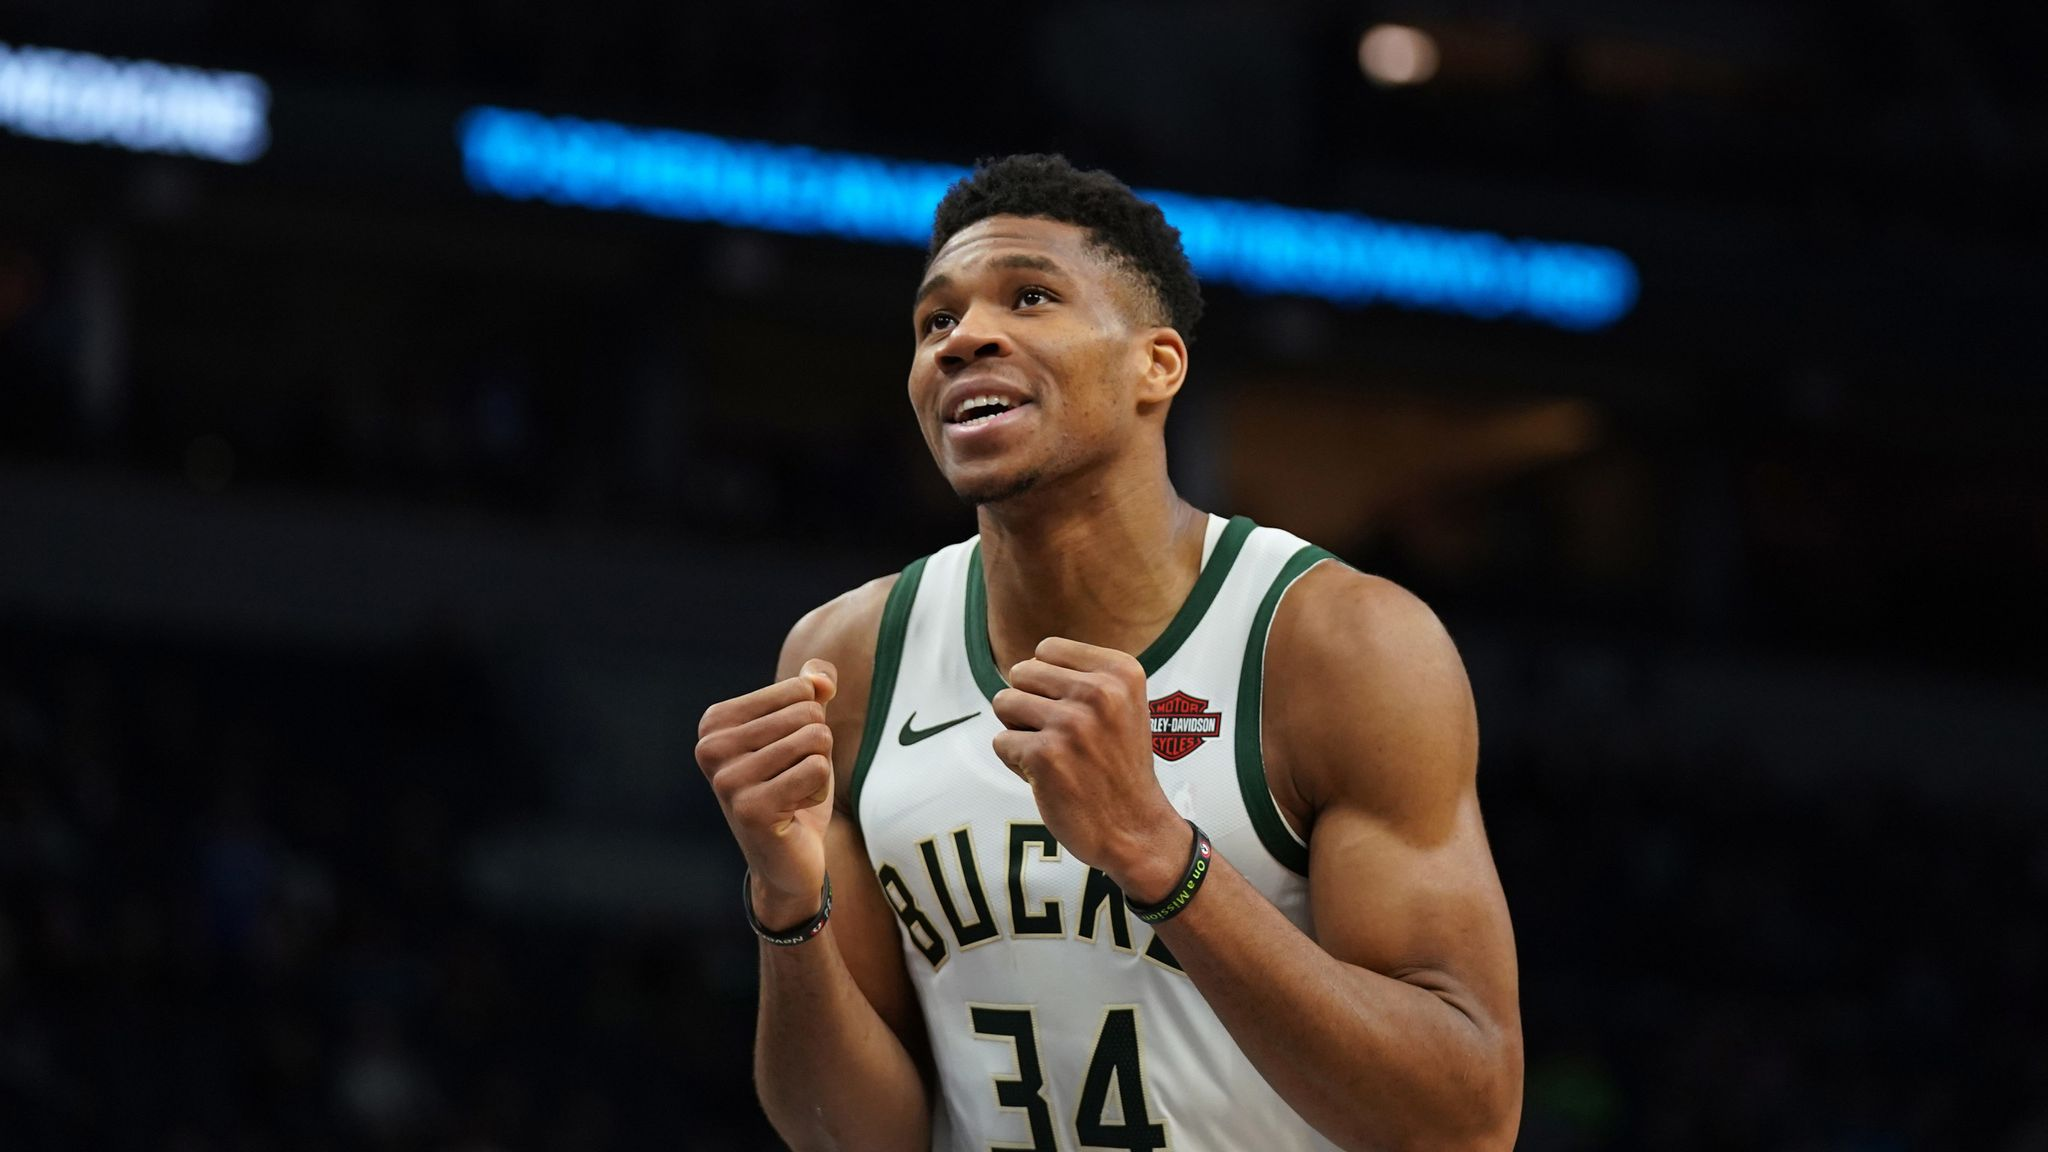 Giannis Antetokounmpo leads MVP race in early stages of new season